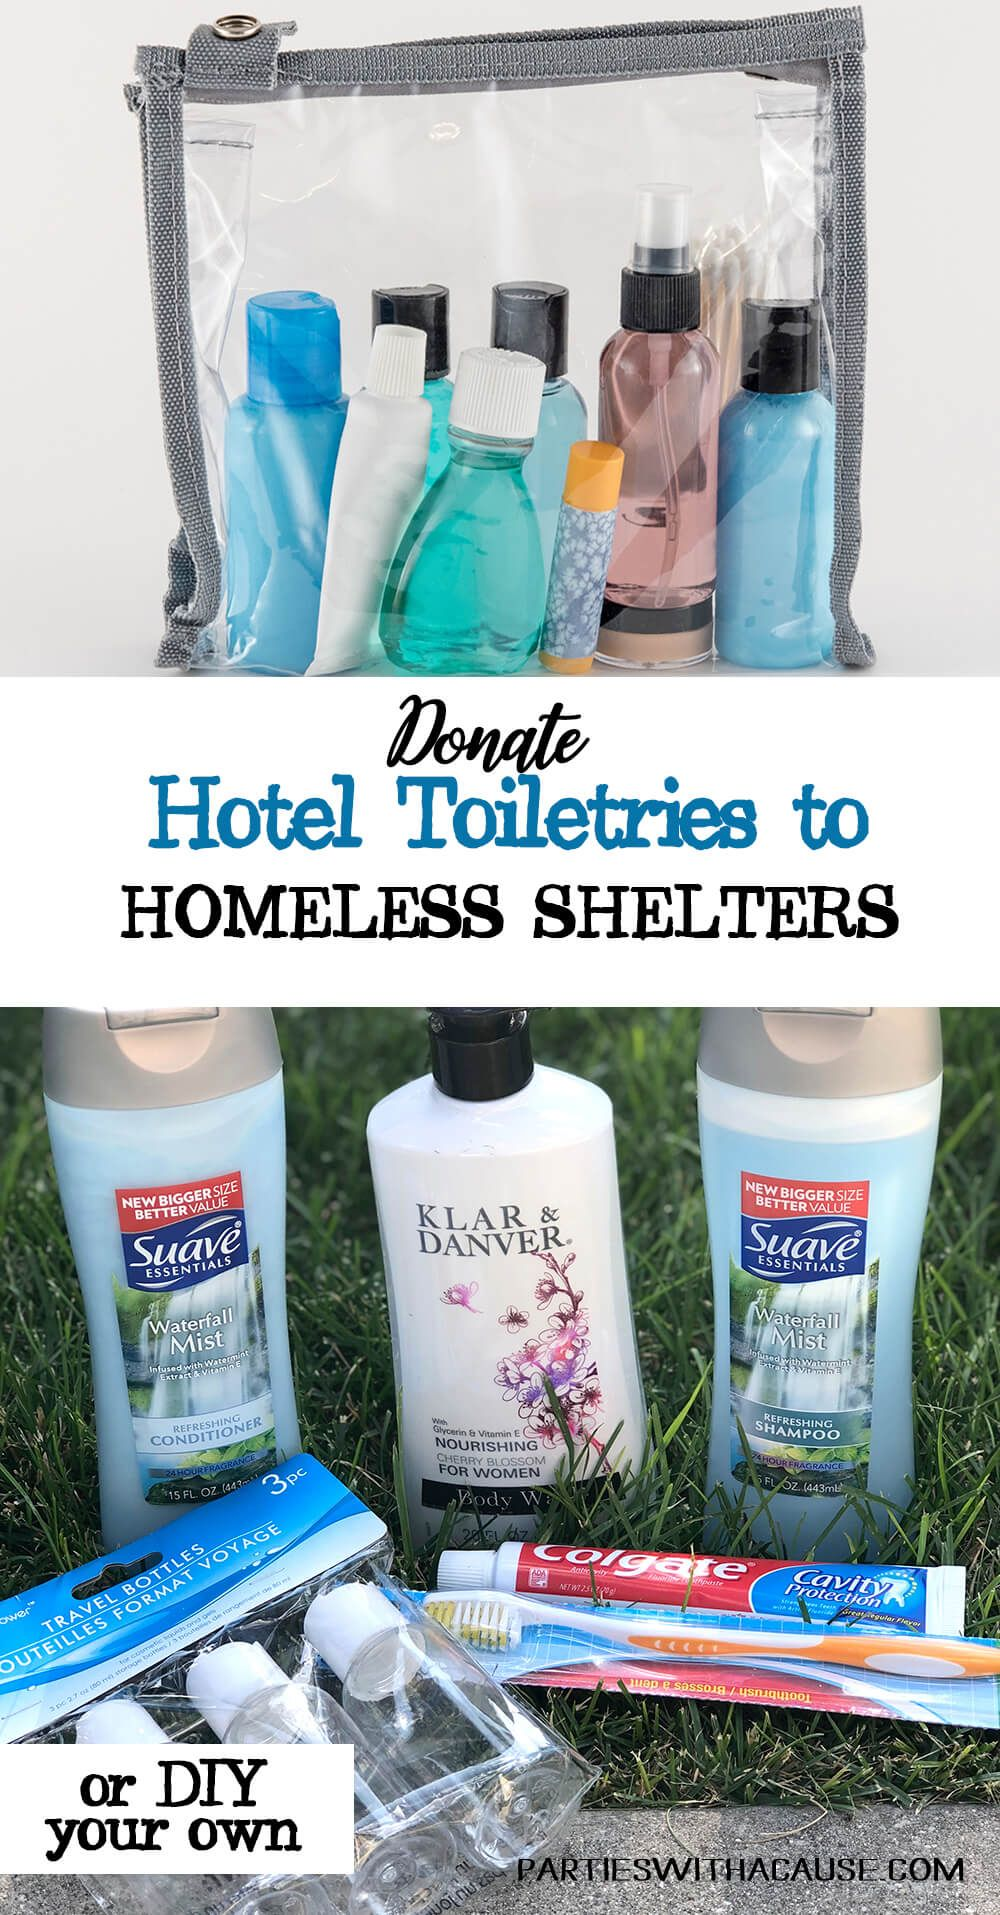 Add A Hygiene Kit To That Blessing Bag For The Homeless This Giving Season And All Year Round Co Hotel Toiletries Travel Size Toiletries Travel Size Products